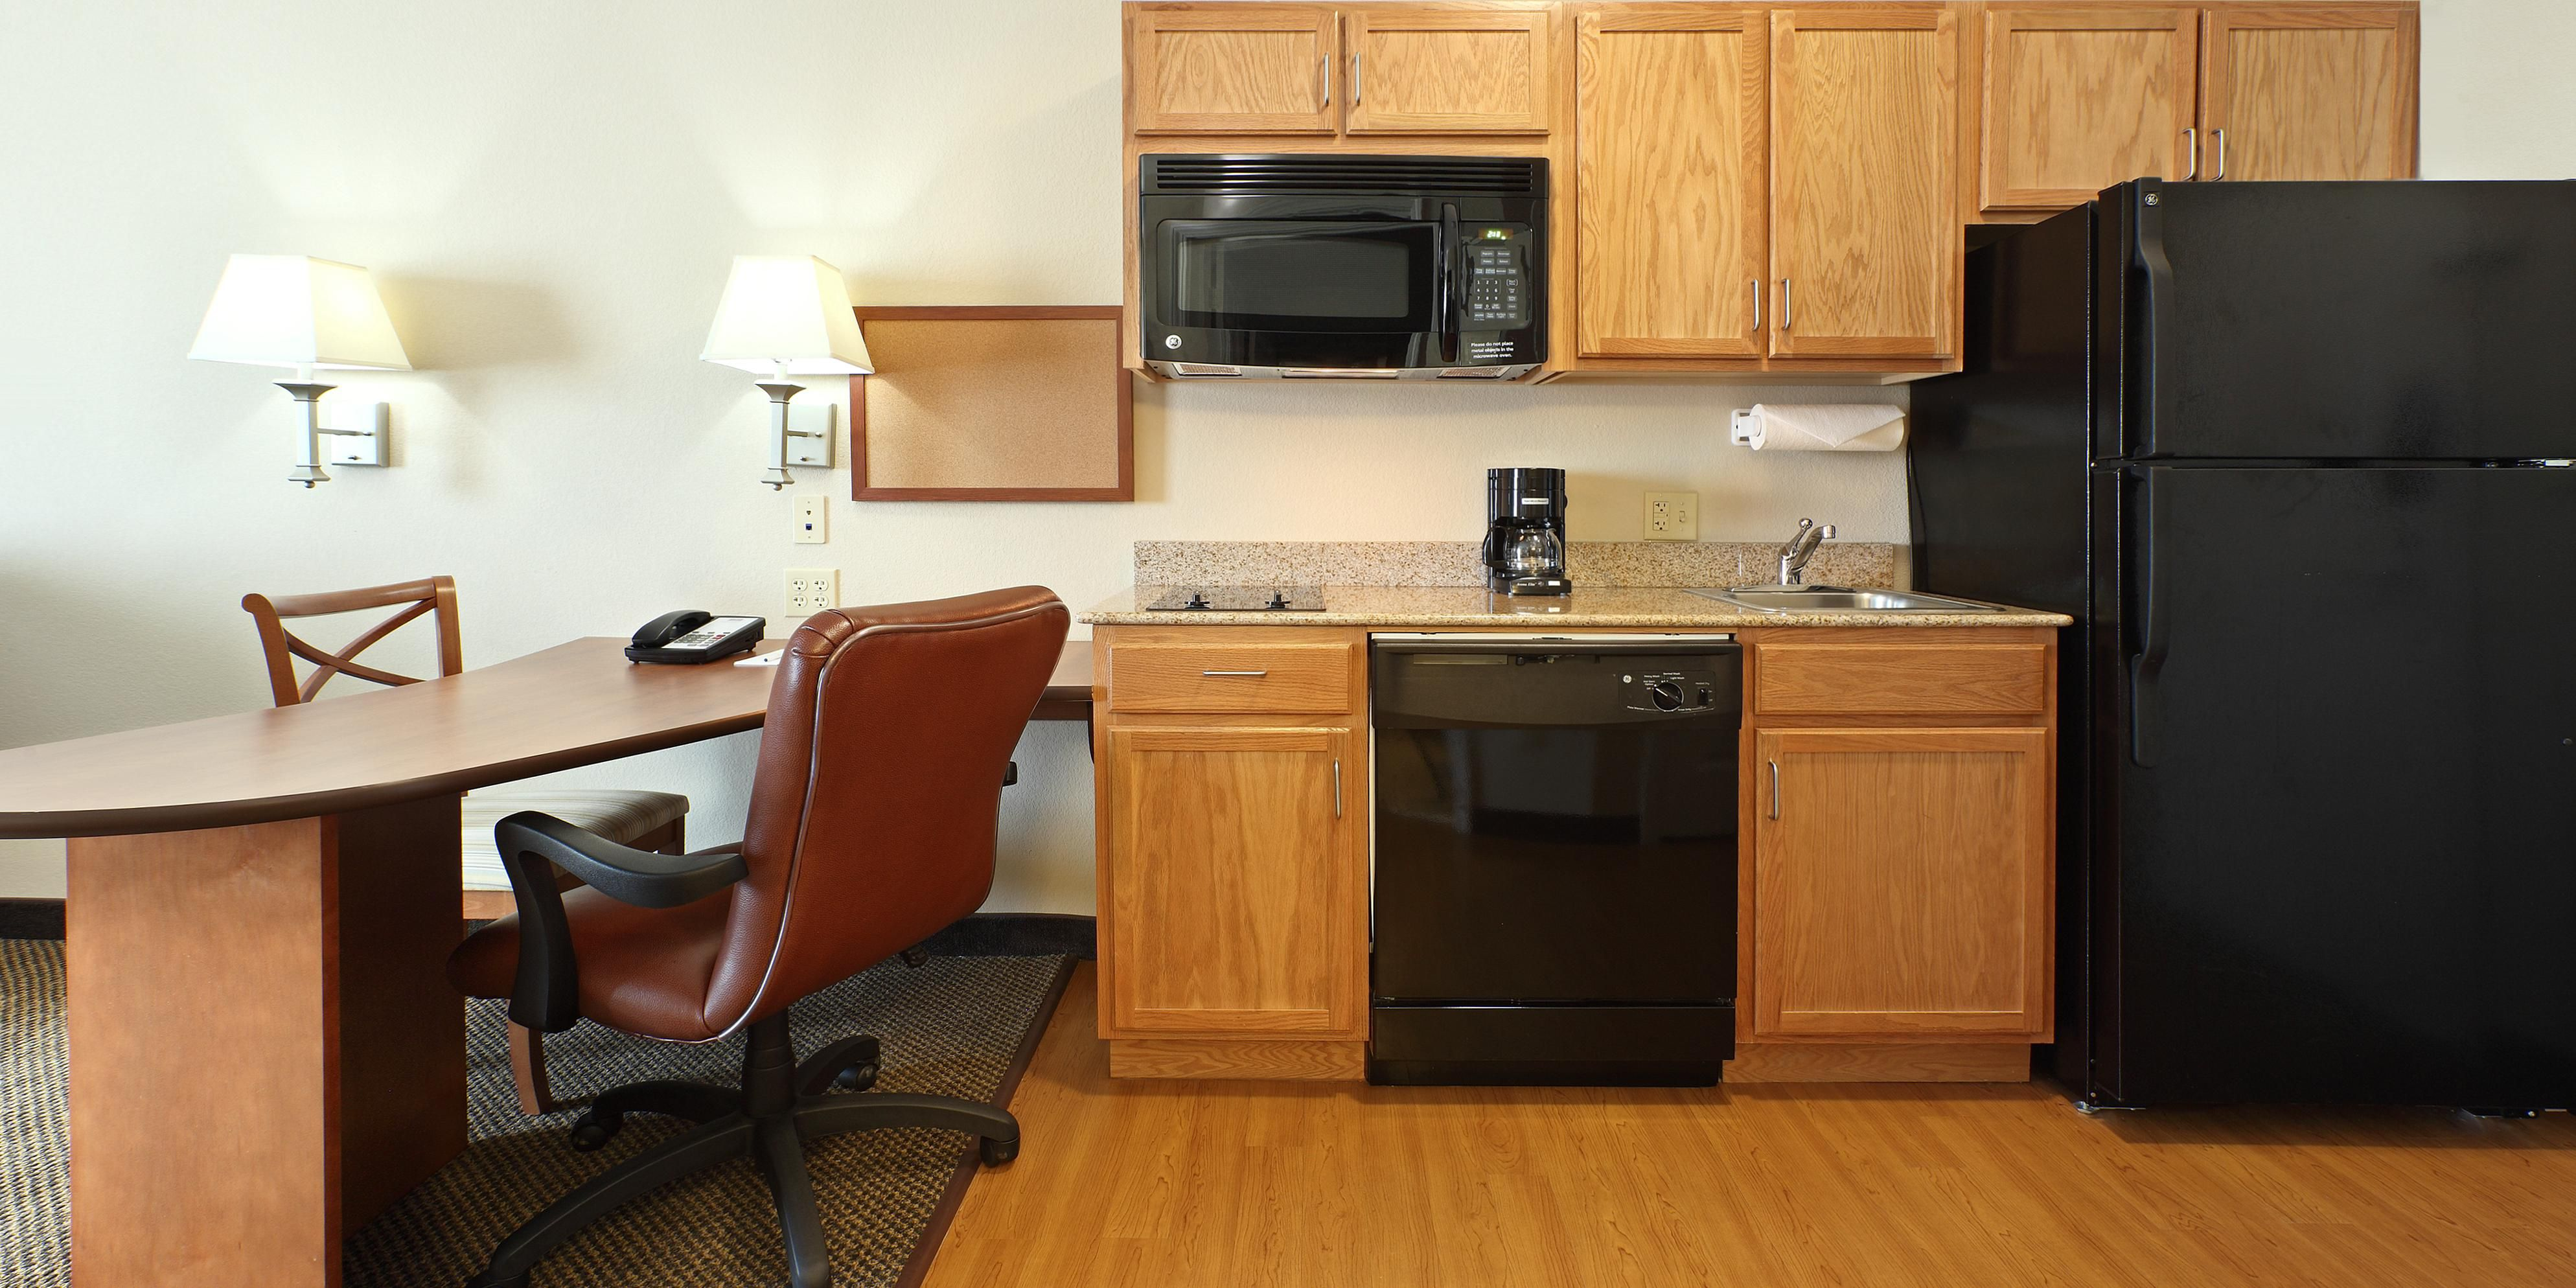 Fort Smith Hotels: Candlewood Suites Fort Smith   Extended Stay Hotel In Fort  Smith, Arkansas